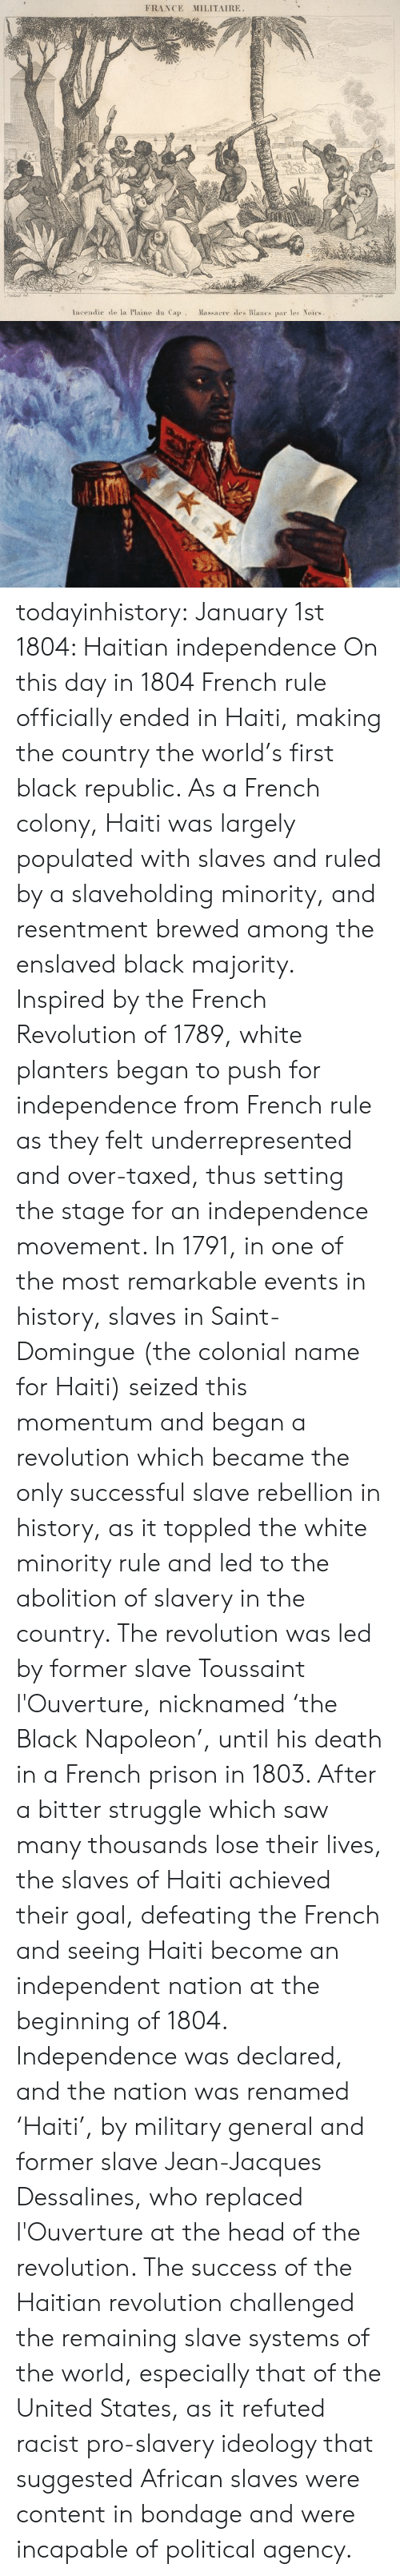 haitian: FRANCE MILITAIRE  Incendie de la Plaine du Cap Massacre des Blancs par le Noirs todayinhistory: January 1st 1804: Haitian independence On this day in 1804 French rule officially ended in Haiti, making the country the world's first black republic. As a French colony, Haiti was largely populated with slaves and ruled by a slaveholding minority, and resentment brewed among the enslaved black majority. Inspired by the French Revolution of 1789, white planters began to push for independence from French rule as they felt underrepresented and over-taxed, thus setting the stage for an independence movement. In 1791, in one of the most remarkable events in history, slaves in Saint-Domingue (the colonial name for Haiti) seized this momentum and began a revolution which became the only successful slave rebellion in history, as it toppled the white minority rule and led to the abolition of slavery in the country. The revolution was led by former slave Toussaint l'Ouverture, nicknamed 'the Black Napoleon', until his death in a French prison in 1803. After a bitter struggle which saw many thousands lose their lives, the slaves of Haiti achieved their goal, defeating the French and seeing Haiti become an independent nation at the beginning of 1804. Independence was declared, and the nation was renamed 'Haiti', by military general and former slave Jean-Jacques Dessalines, who replaced l'Ouverture at the head of the revolution. The success of the Haitian revolution challenged the remaining slave systems of the world, especially that of the United States, as it refuted racist pro-slavery ideology that suggested African slaves were content in bondage and were incapable of political agency.